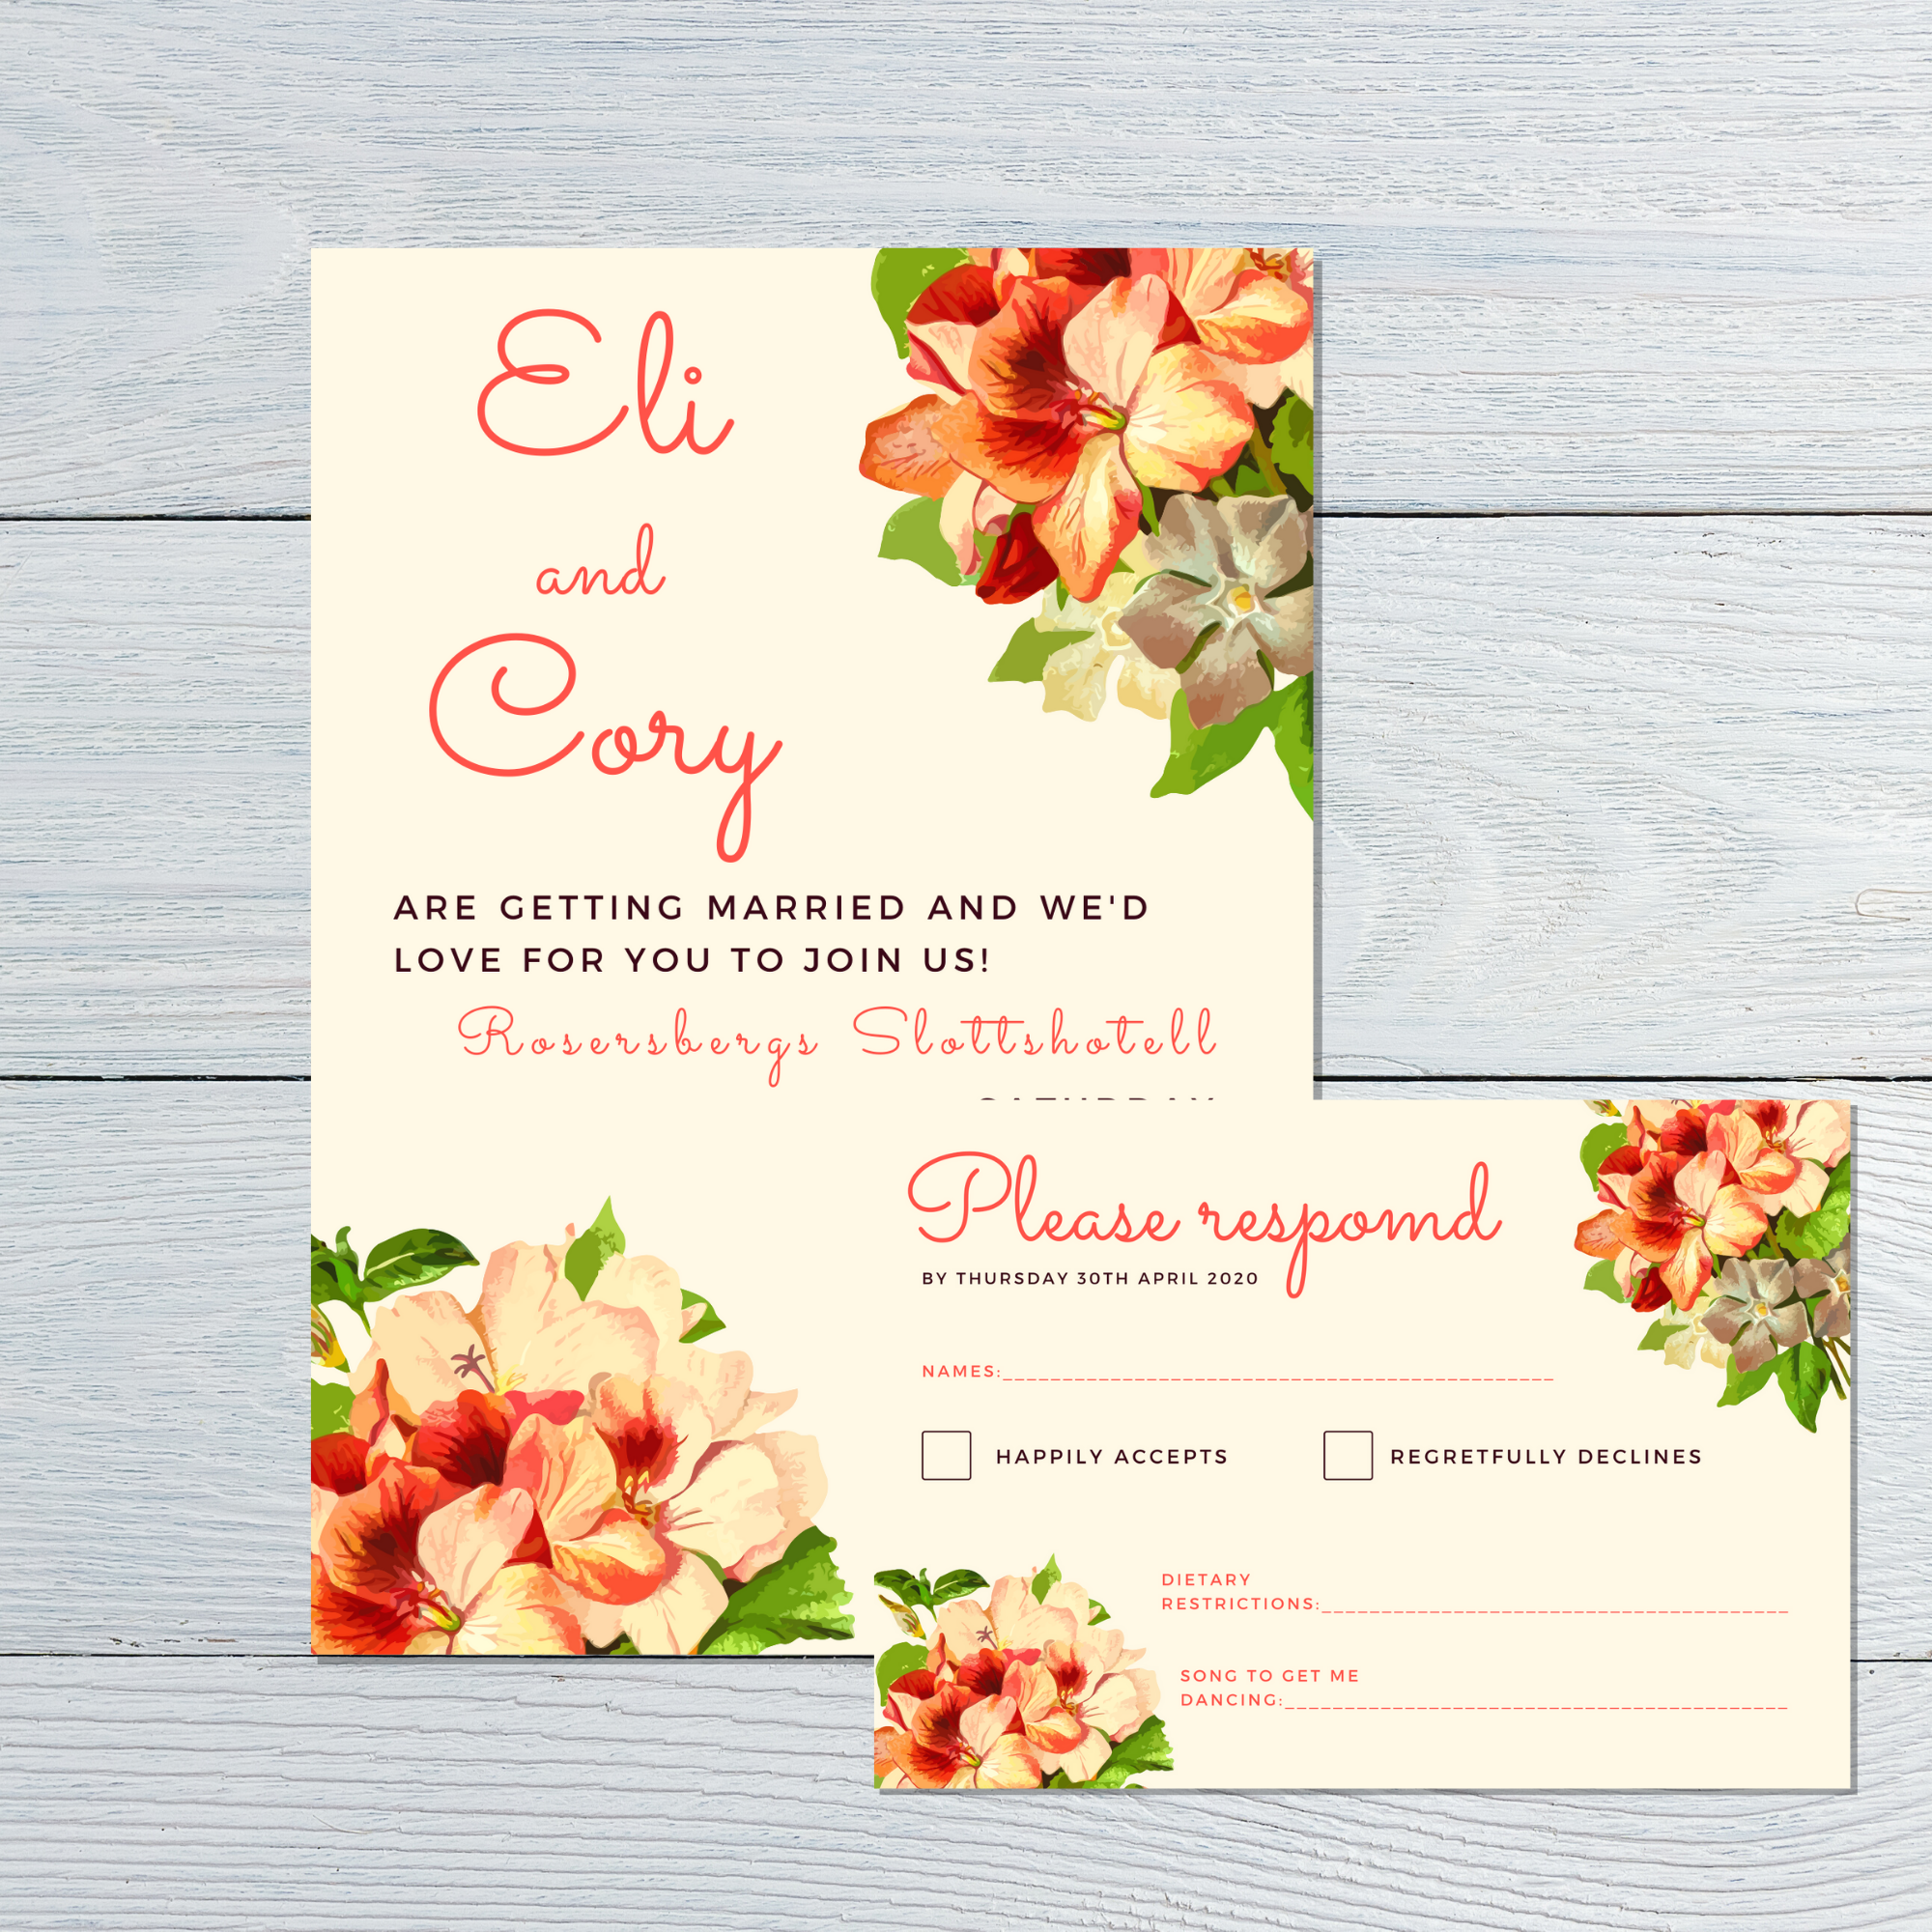 Wedding invitation and RSVP with flowers